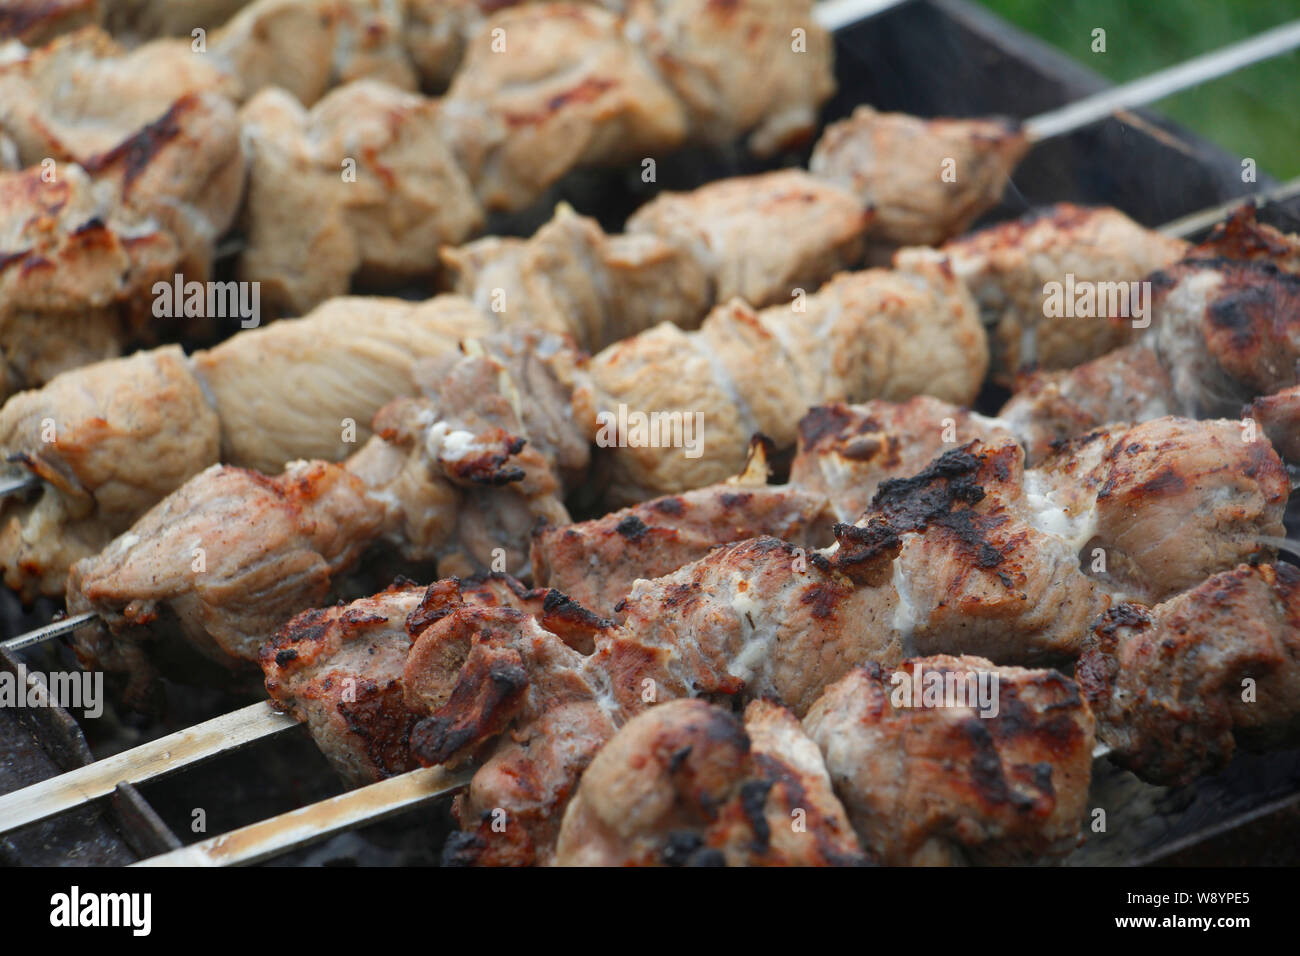 Kebab Shish 5 Pcs SET Stainless Steel Barbecue BBQ Traditional Made in TURKEY